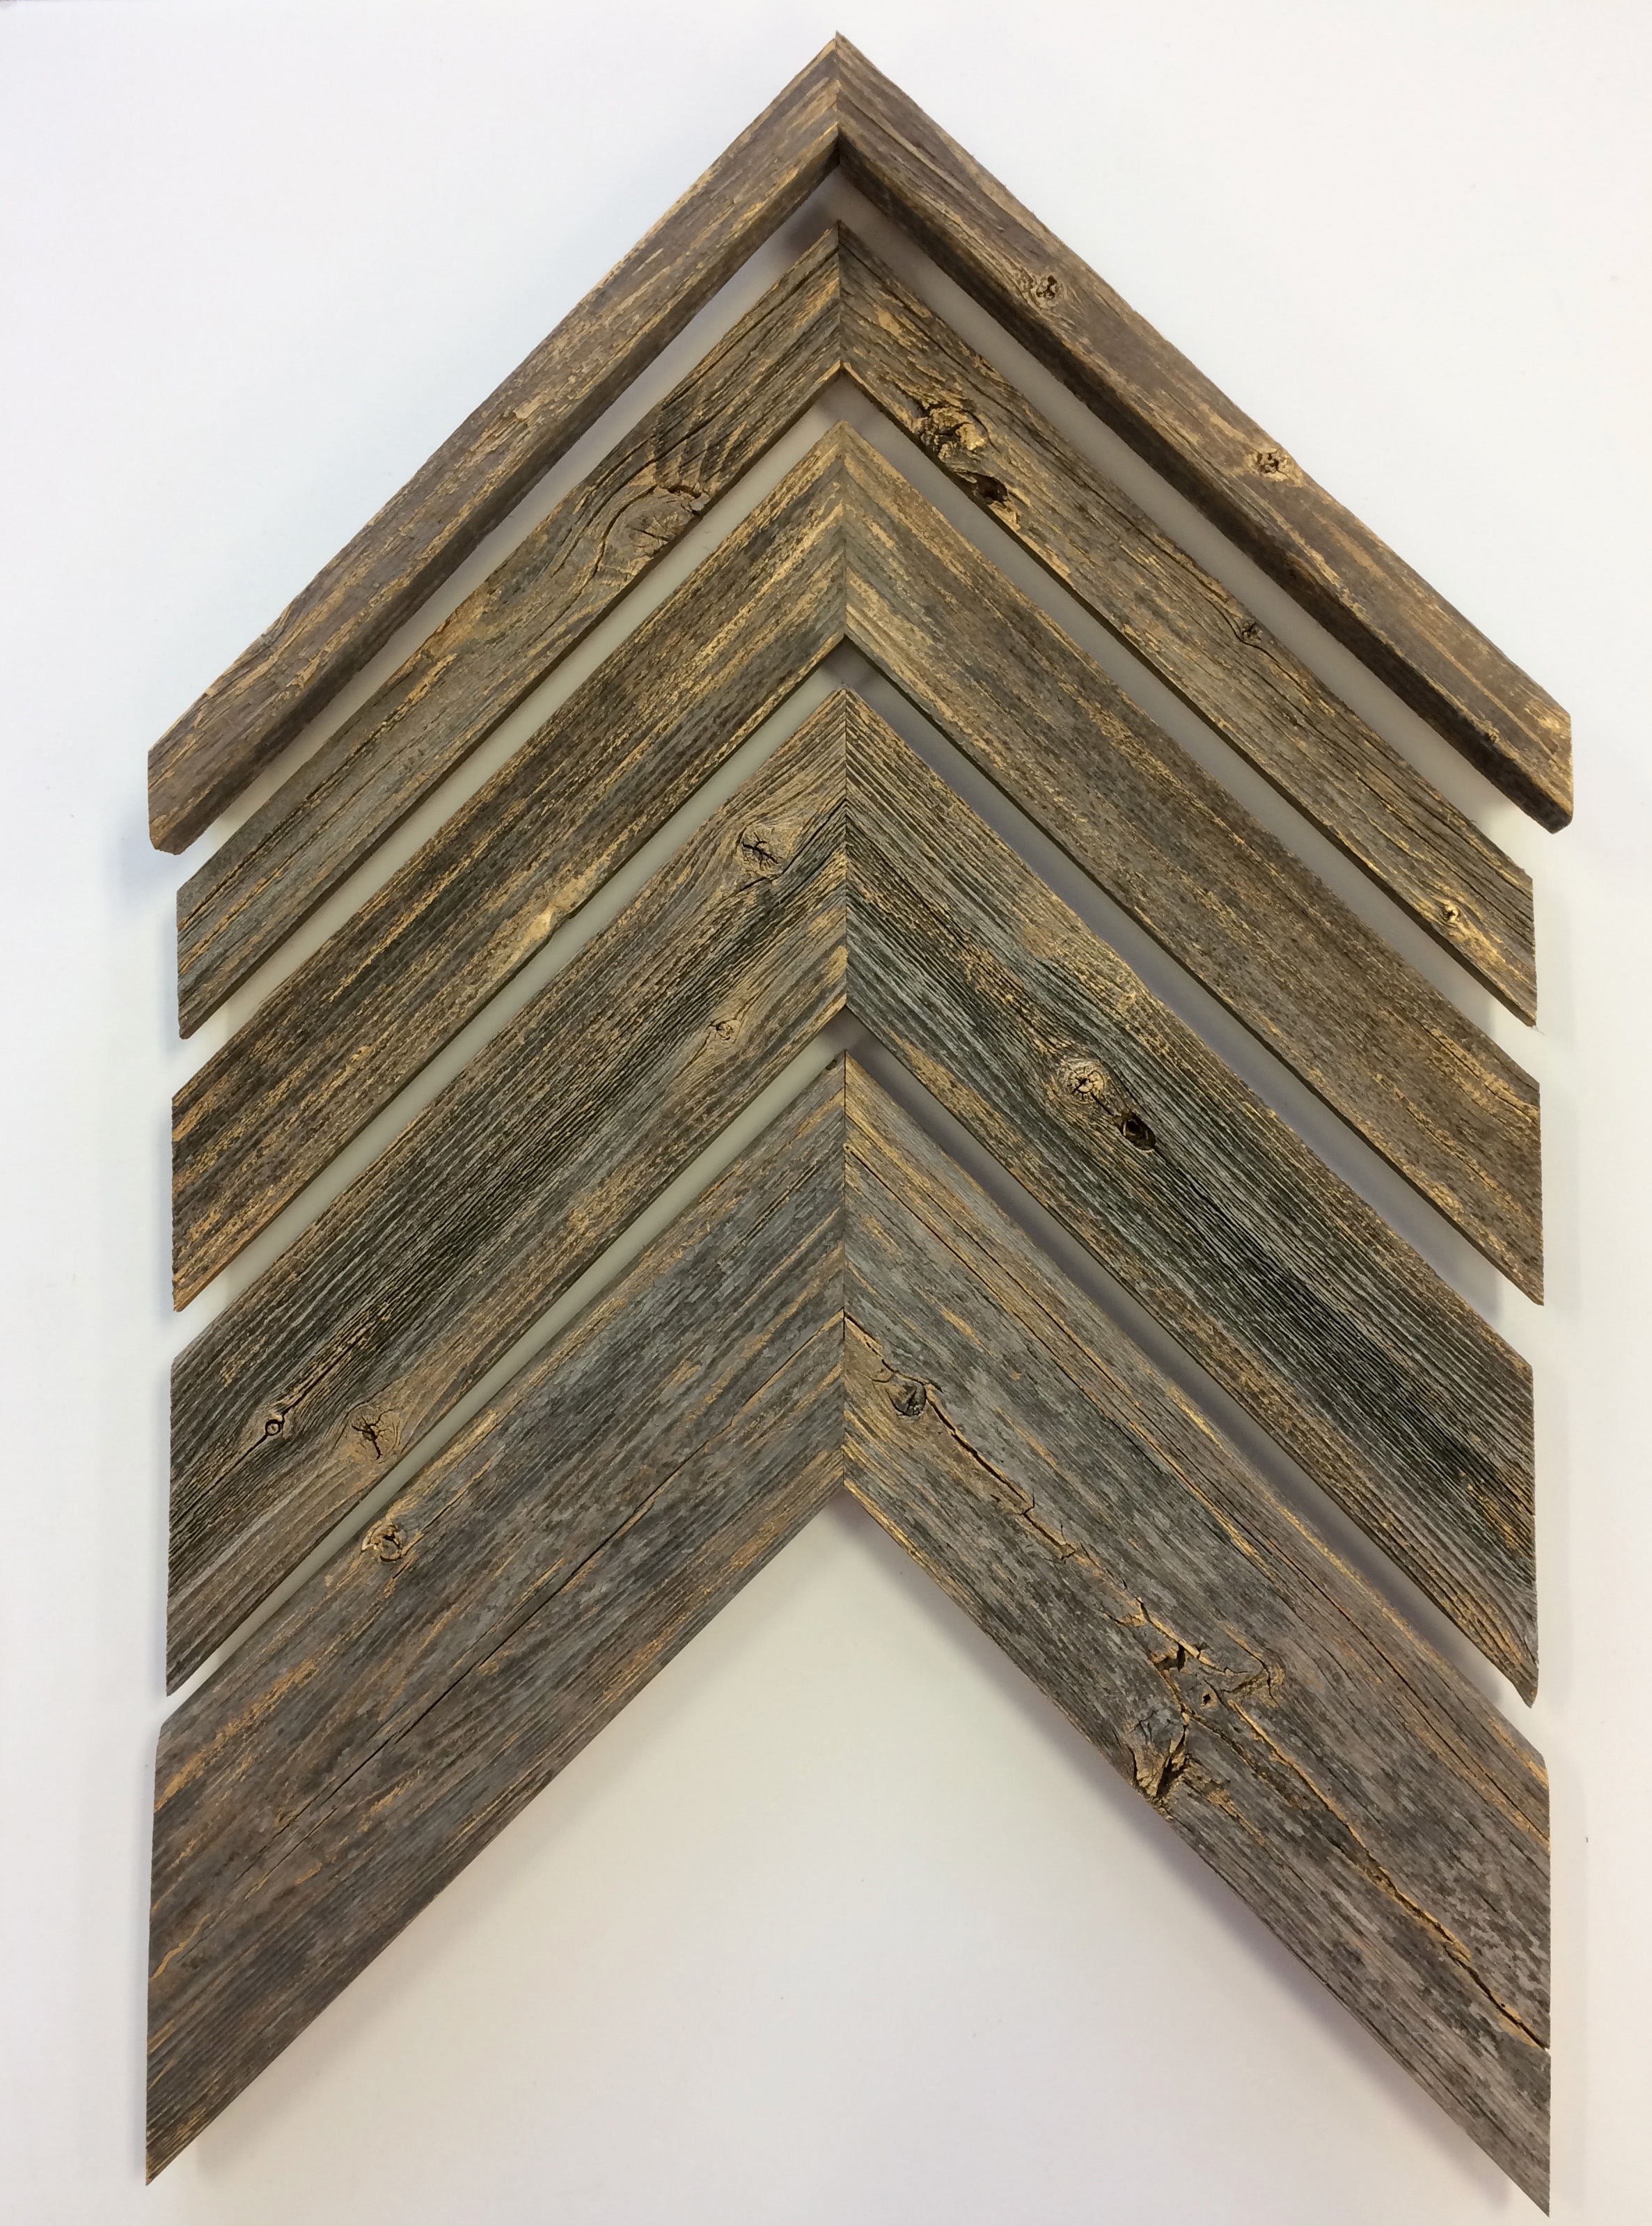 Barnwood moulding highlighted with gold leaf paint